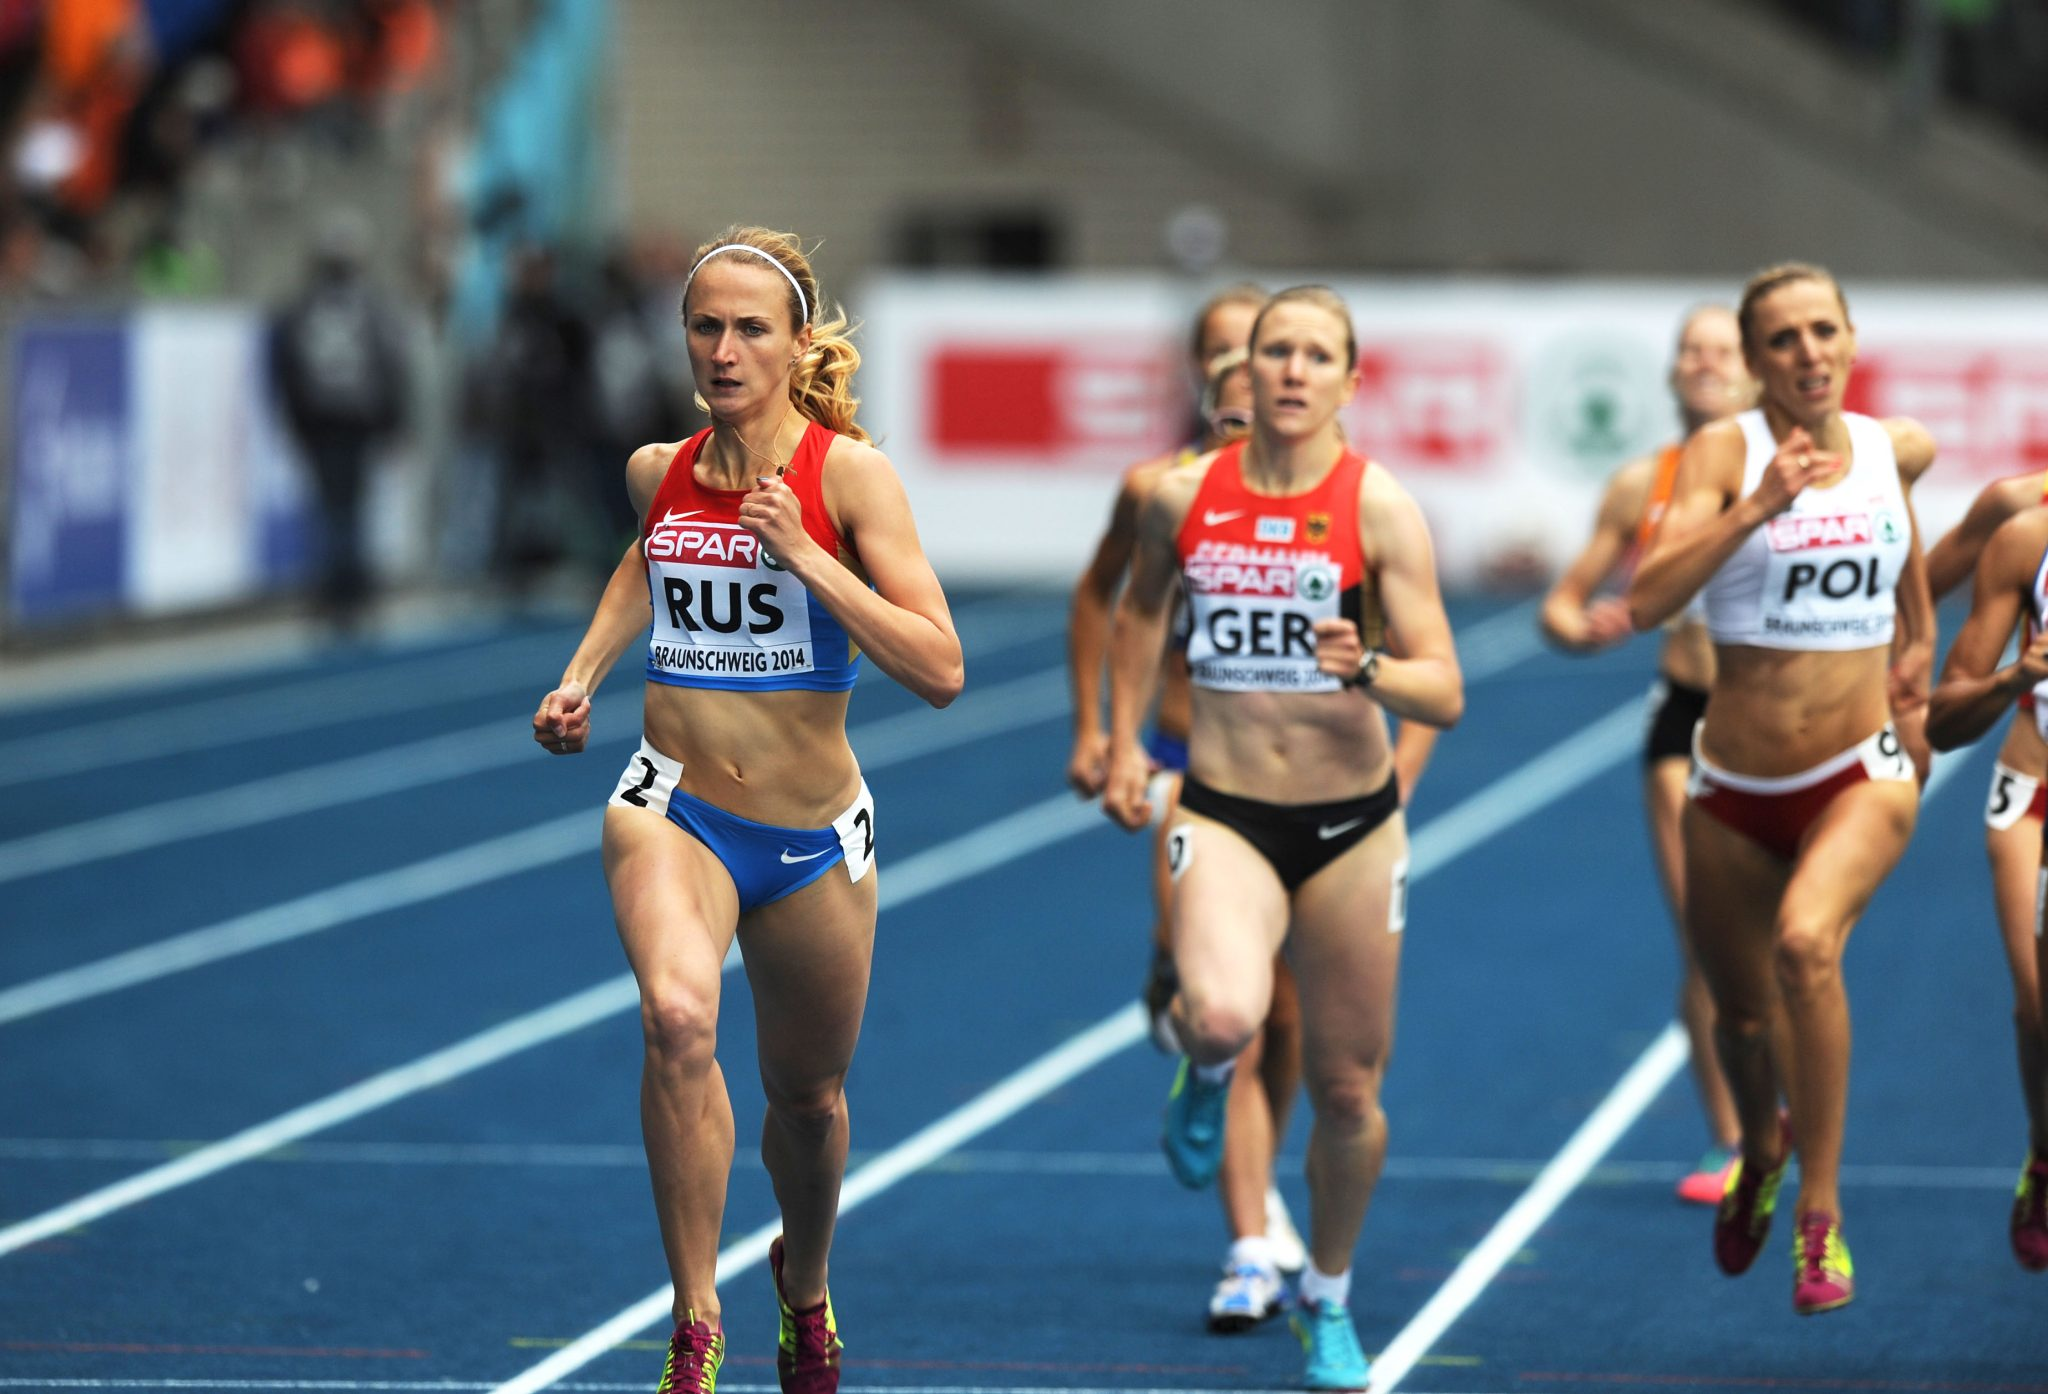 Relay joy for Britain as Russia and Germany battle for glory in Braunschweig